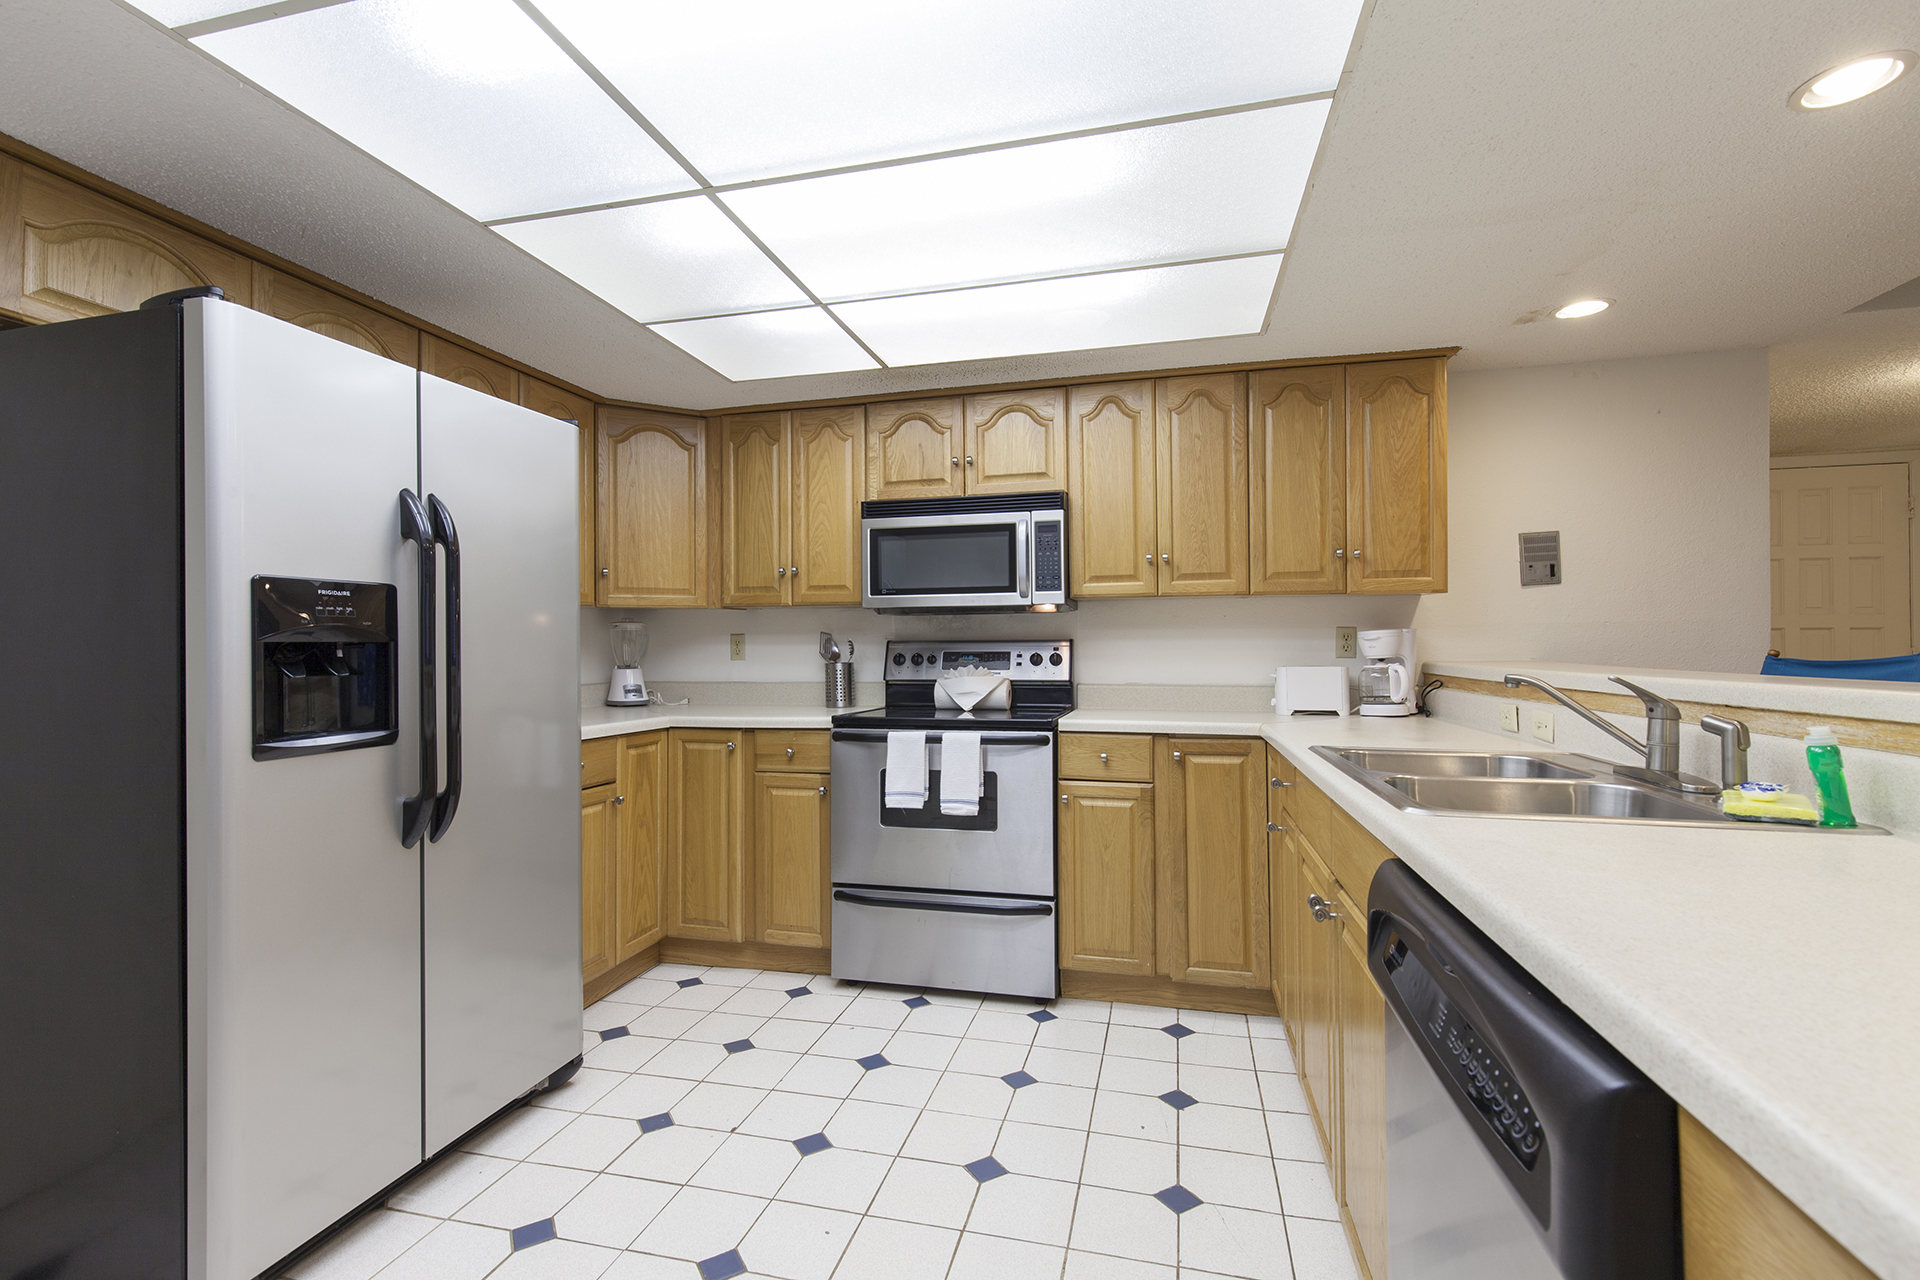 Spacious fully equipped kitchen with double door refrigerator.